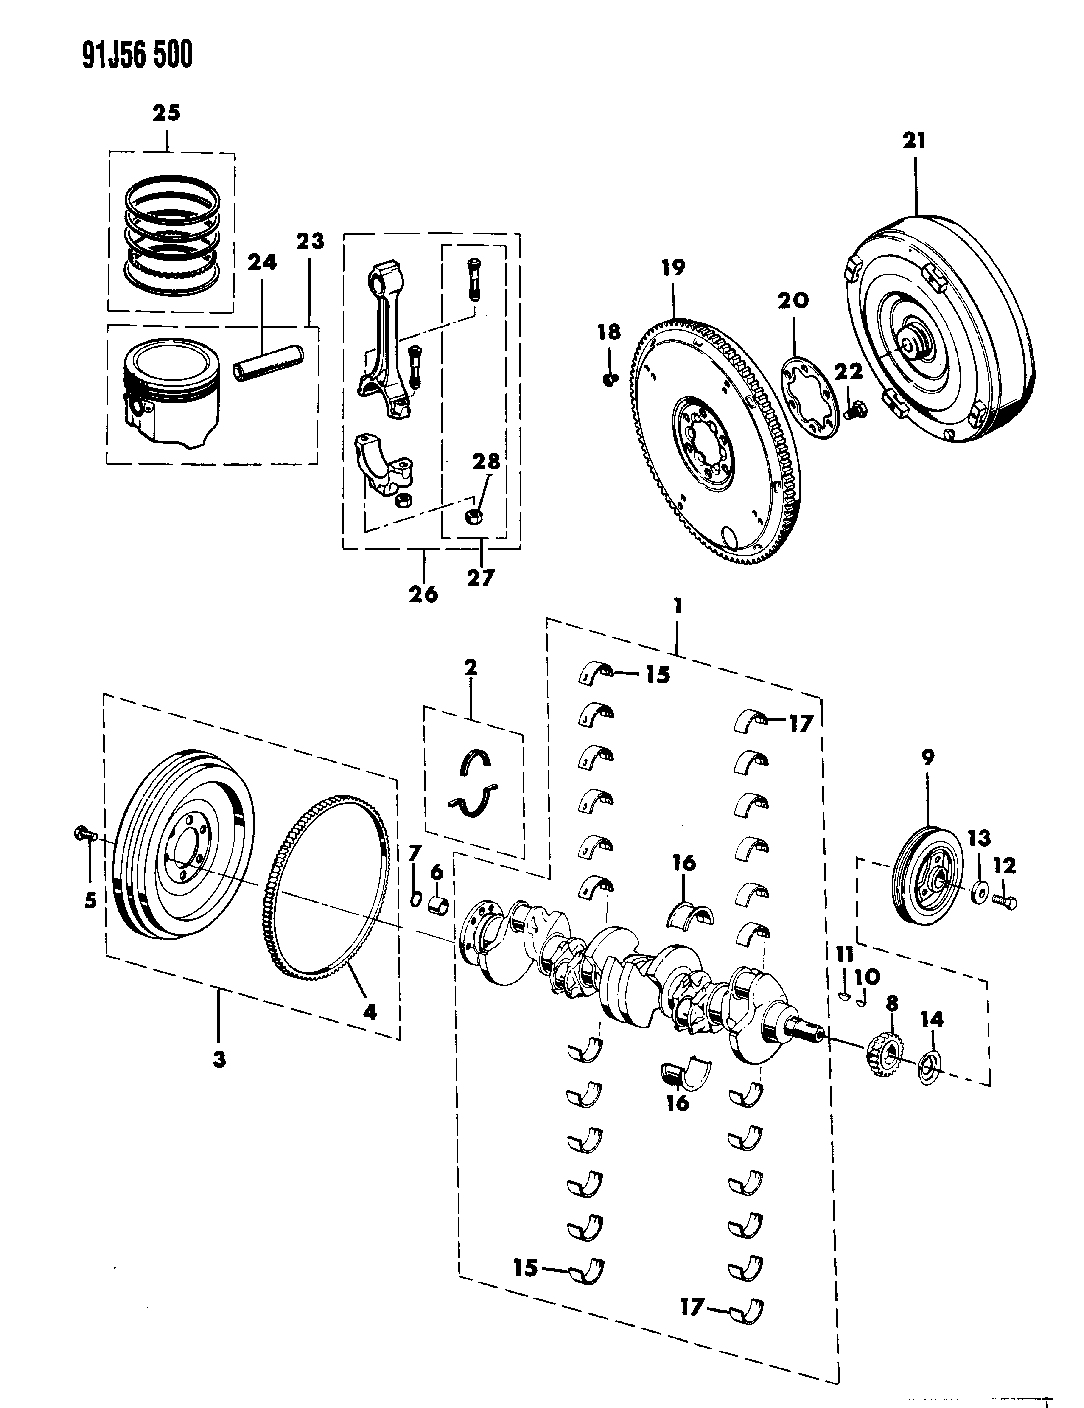 1991 Jeep Wrangler Engine Diagram Crankshaft Pistons And Torque Converter